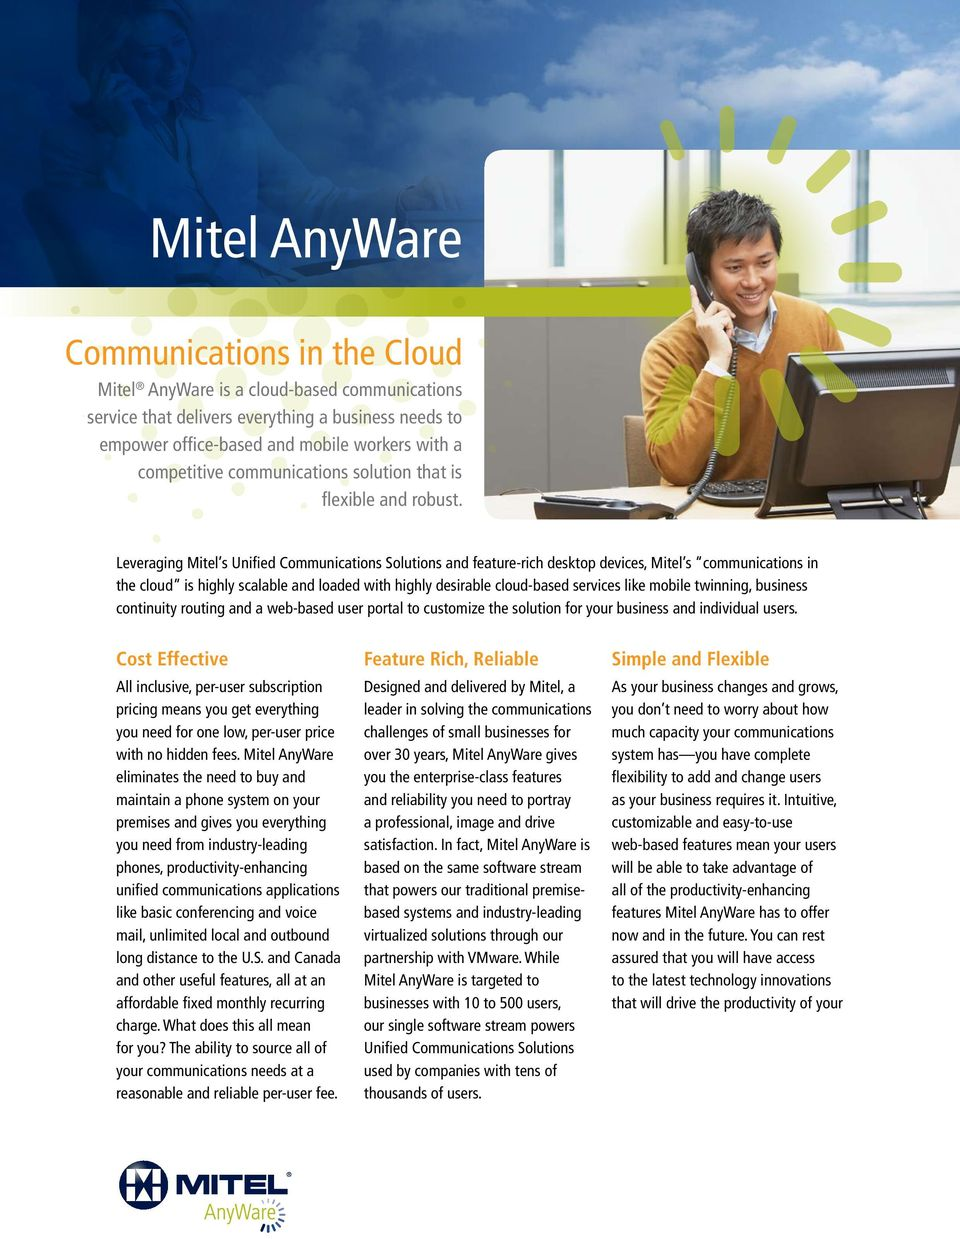 Leveraging Mitel s Unified Communications Solutions and feature-rich desktop devices, Mitel s communications in the cloud is highly scalable and loaded with highly desirable cloud-based services like